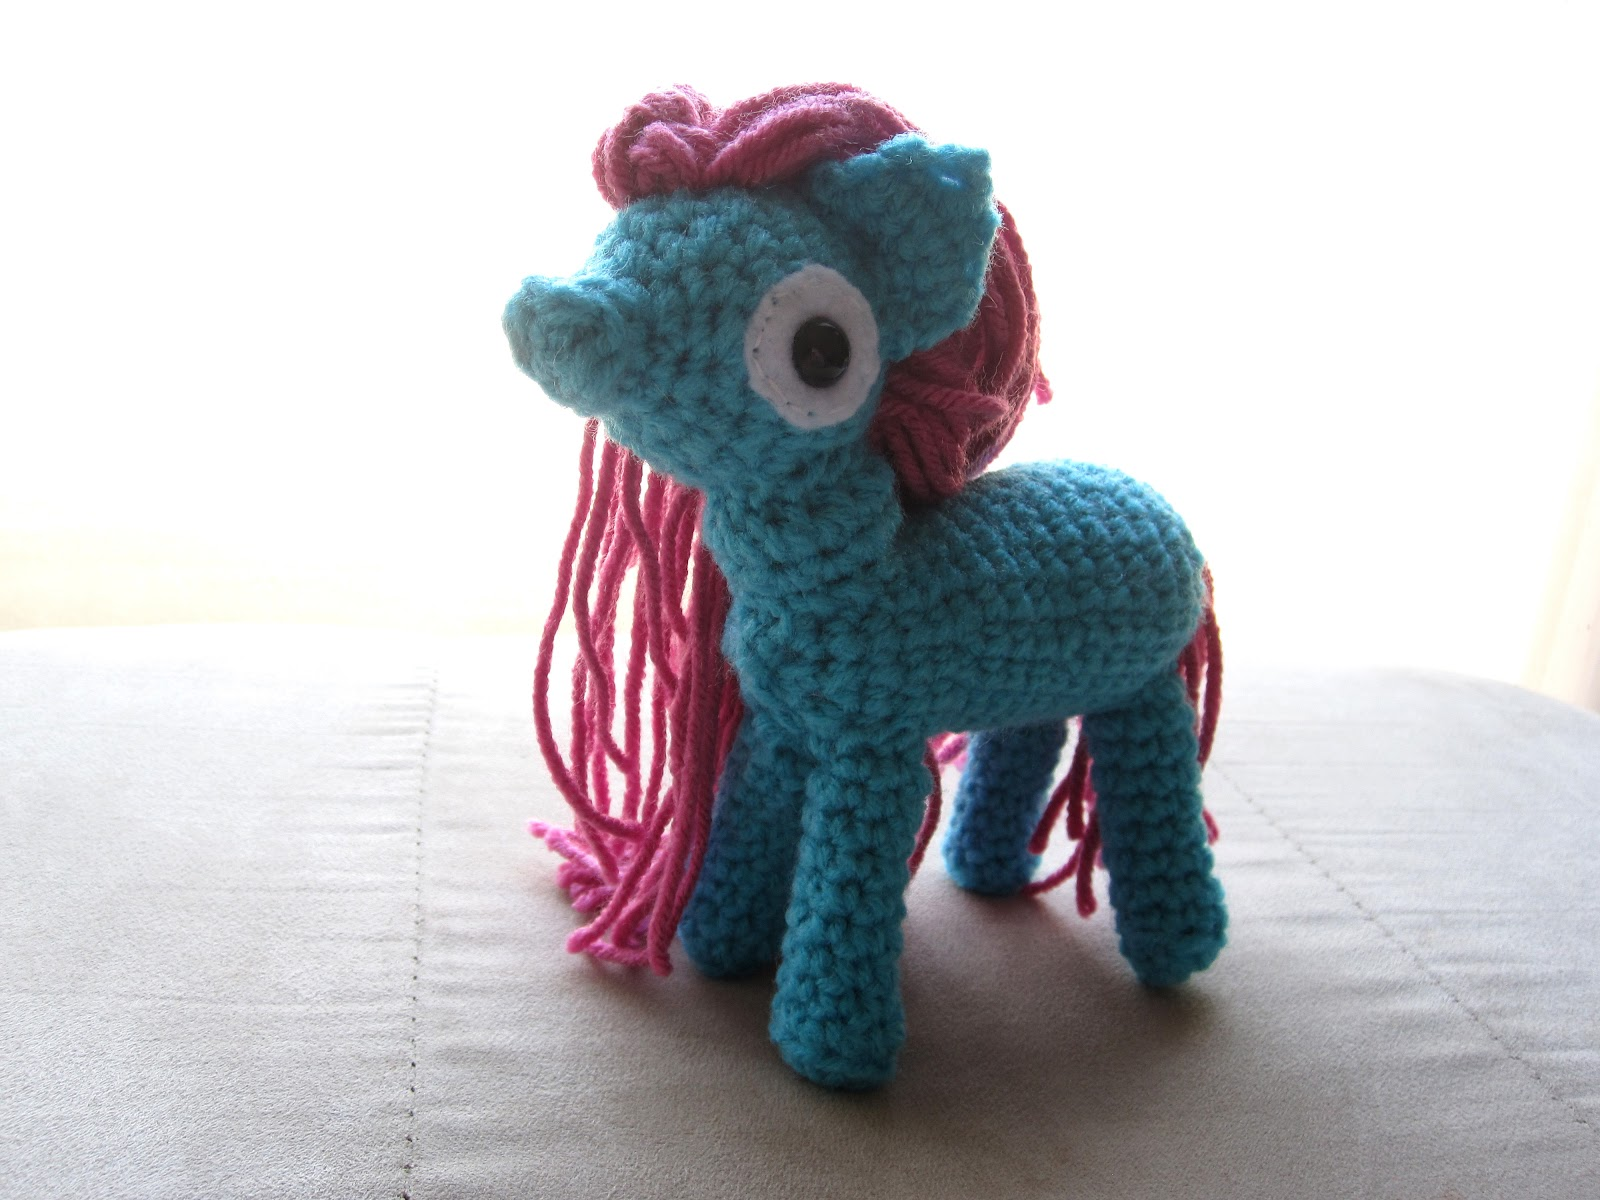 Amigurumi Pony : xX The Catalope Blogs Xx: Pony Amigurumi Doll - March 2012